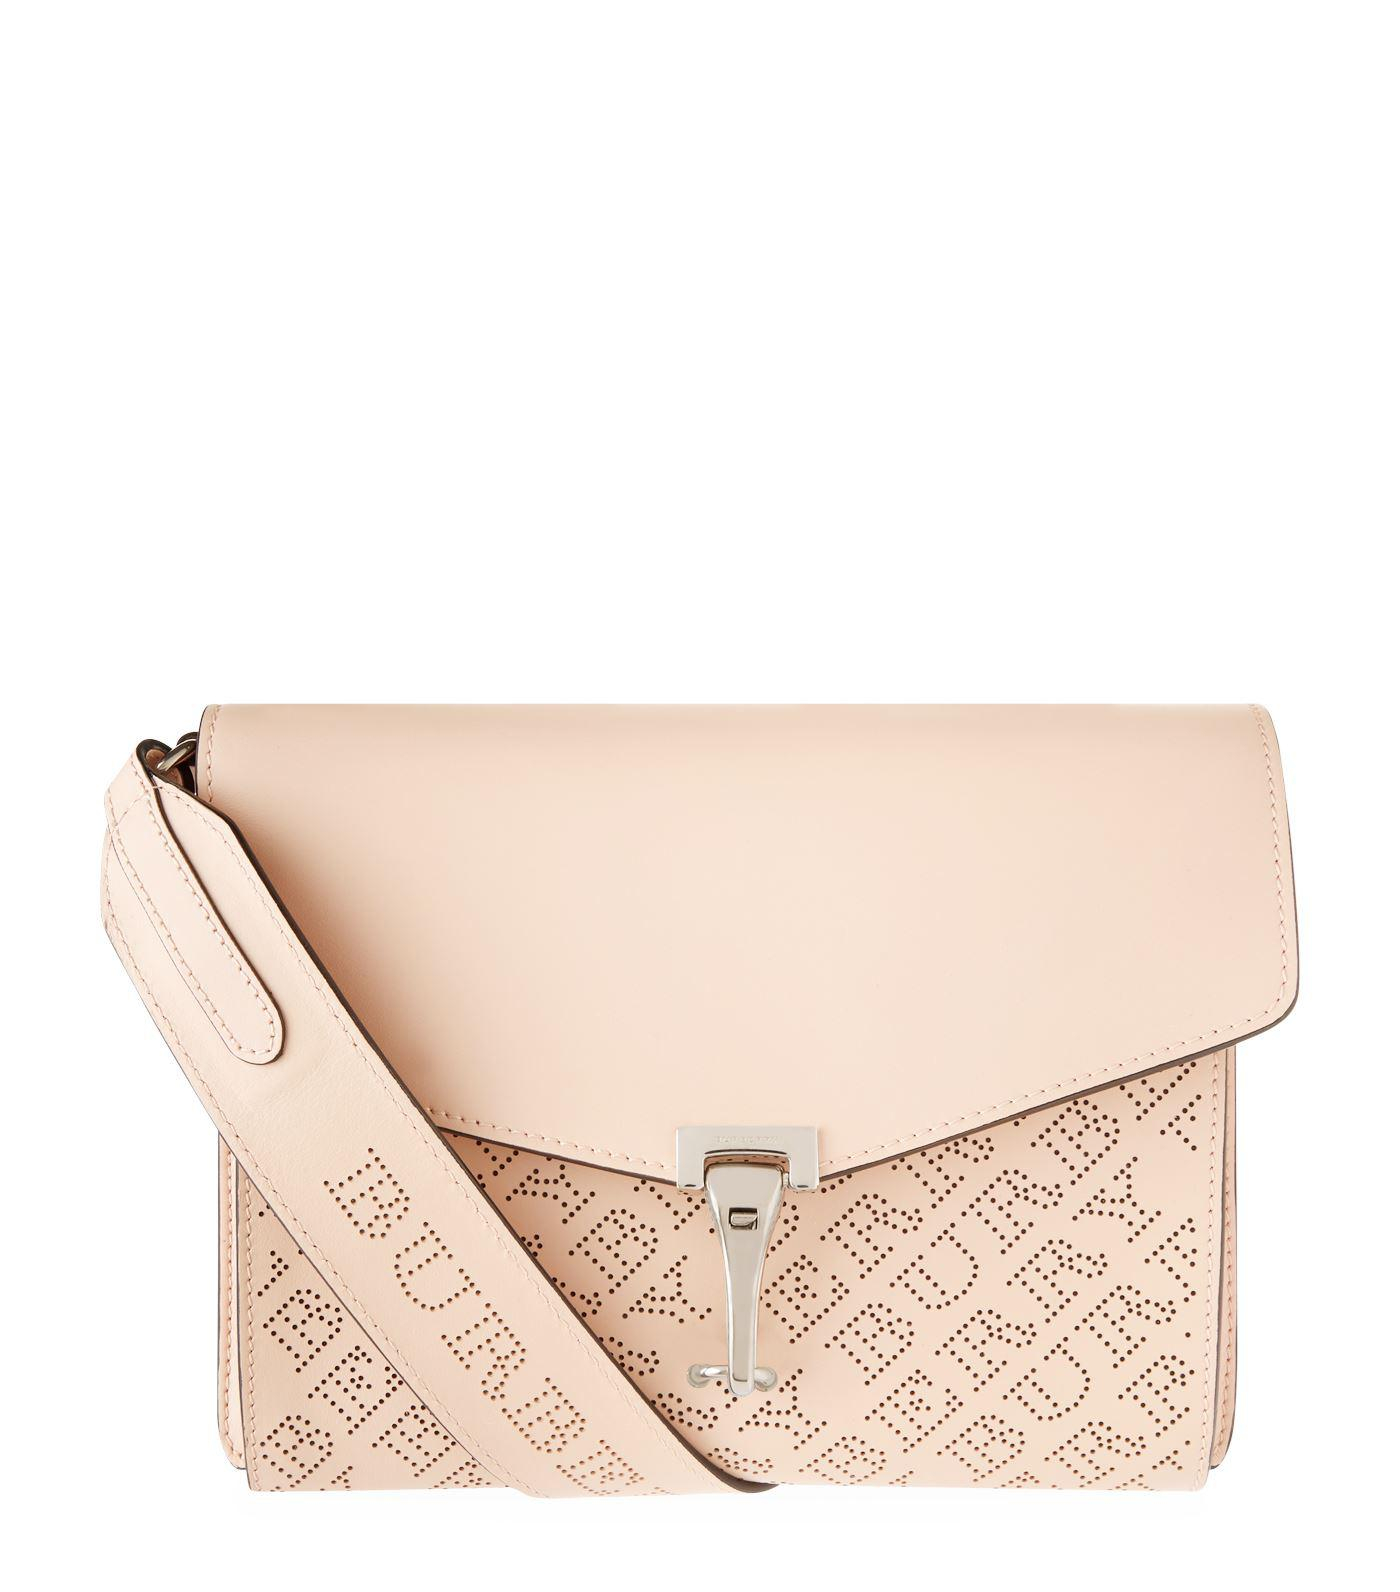 009db7eed945 Lyst - Burberry Small Perforated Logo Cross Body Bag in Pink